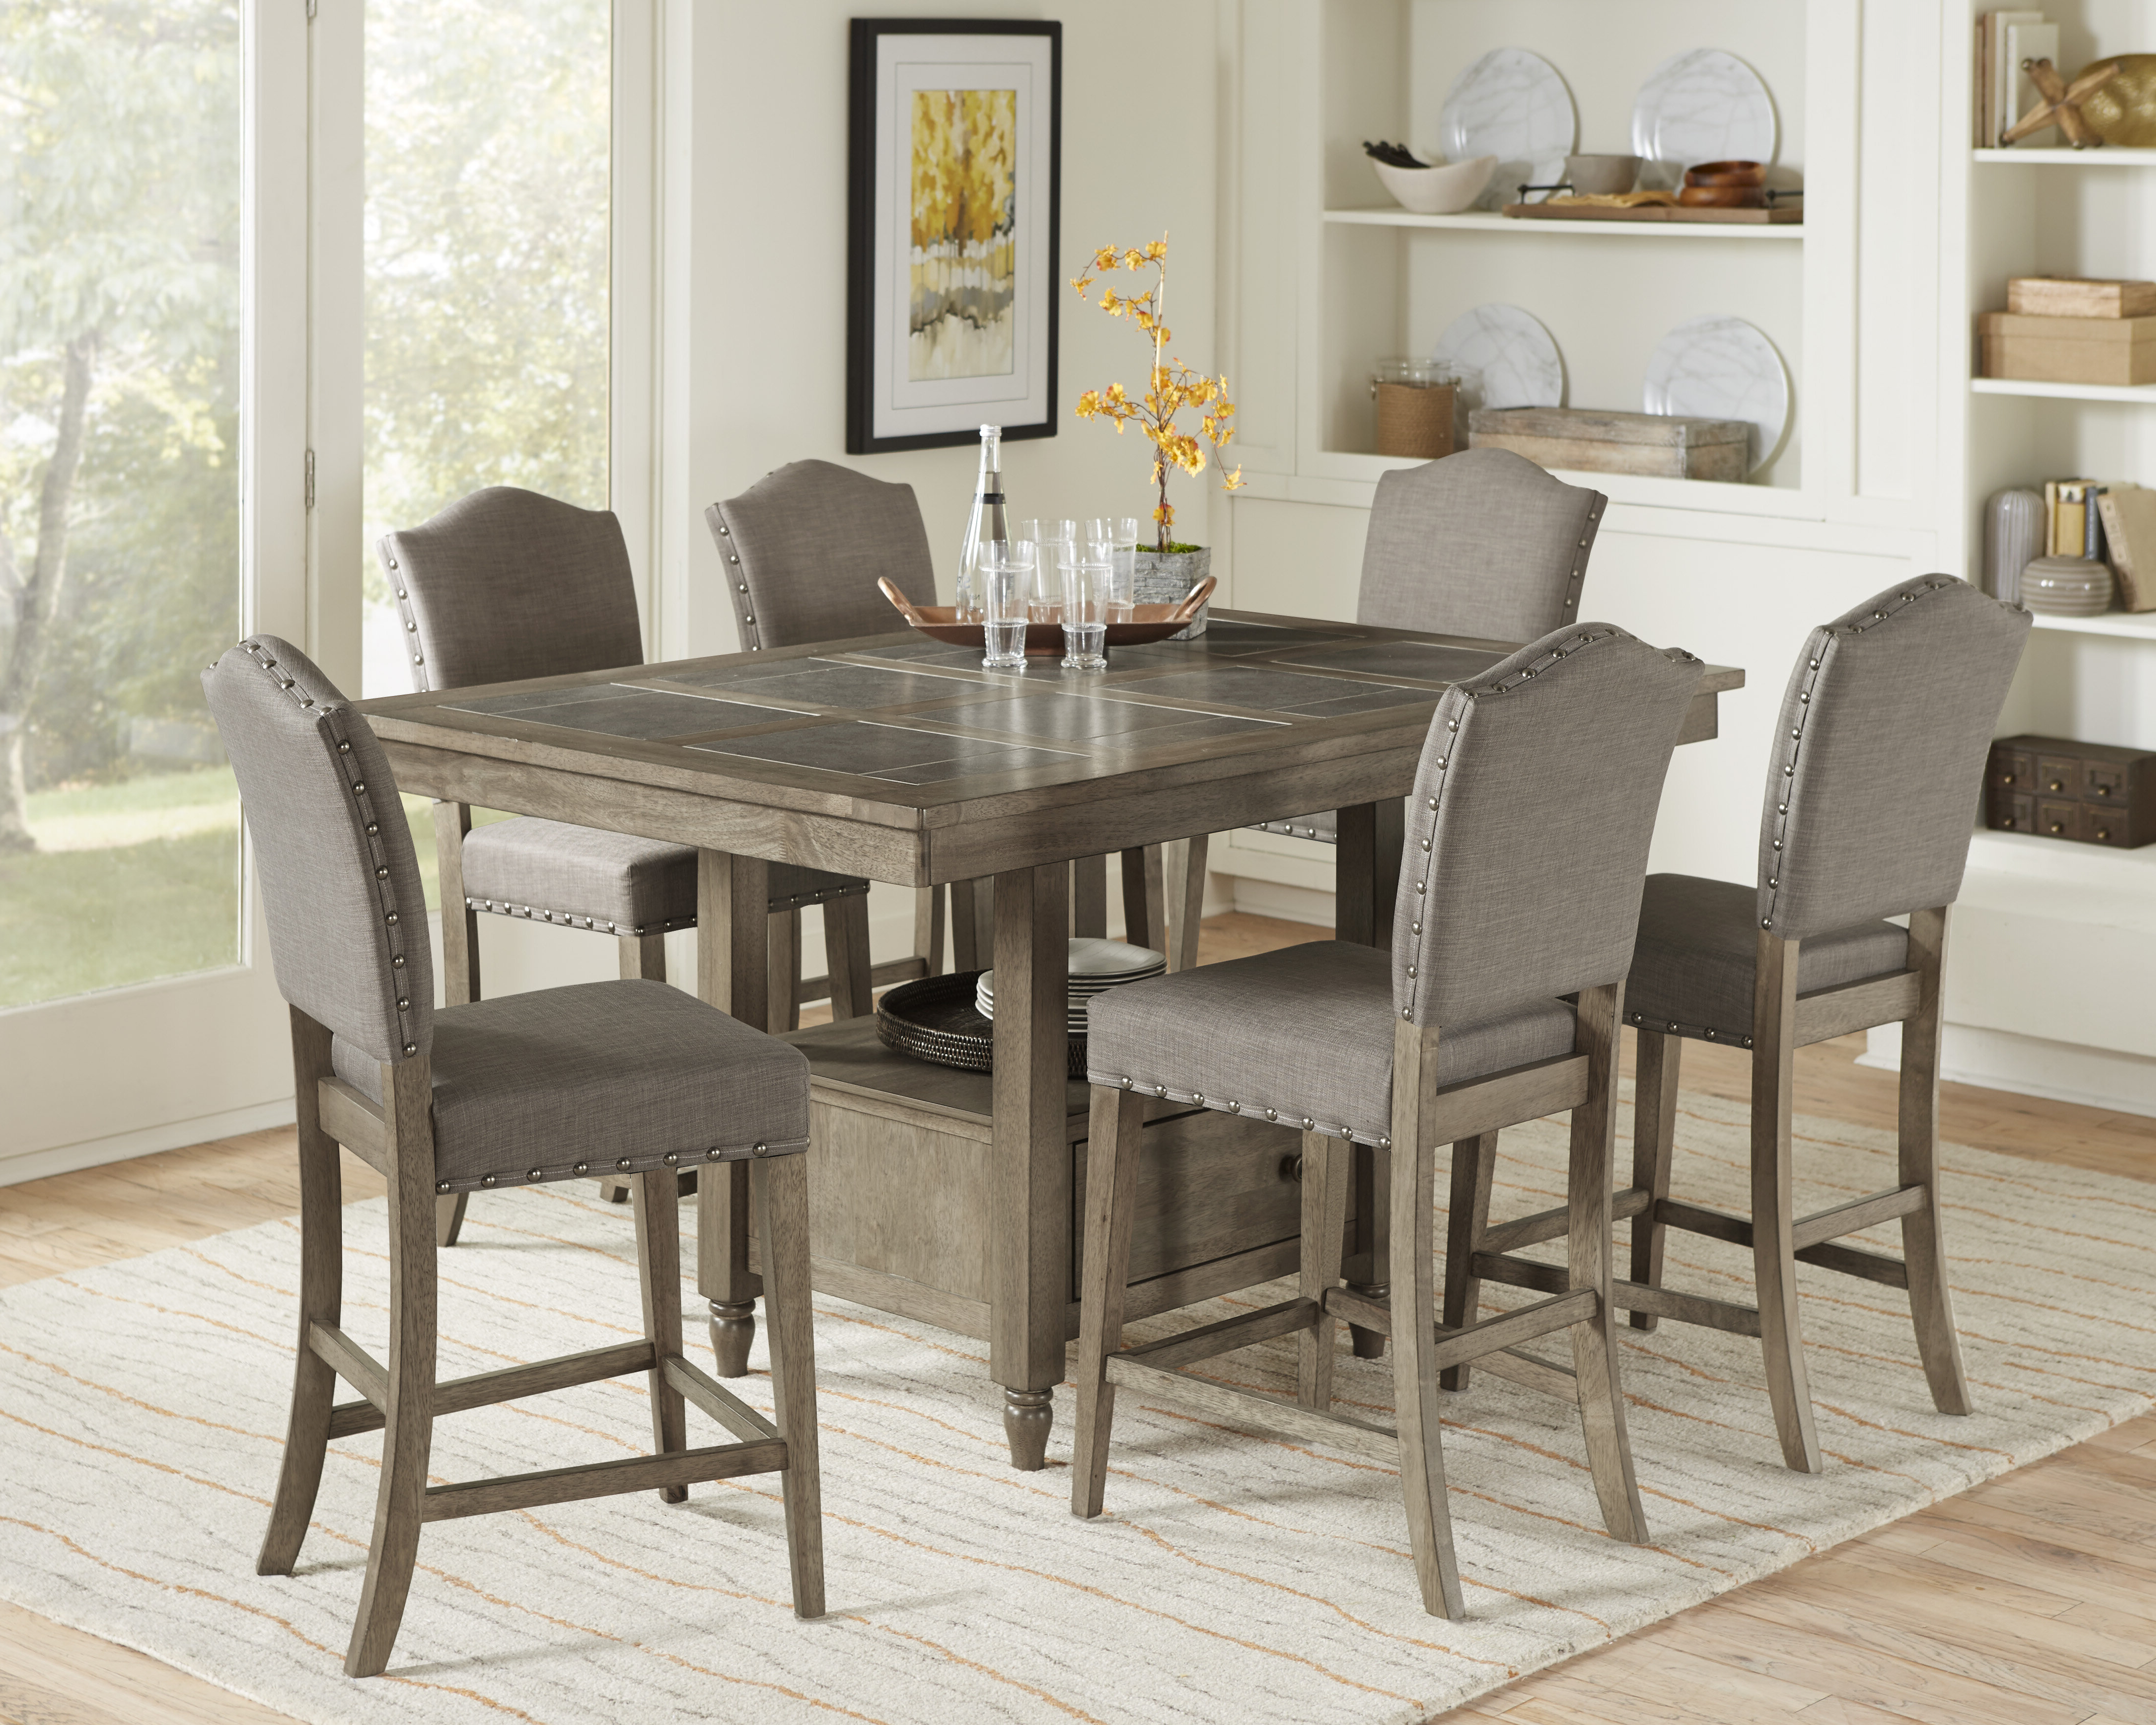 Most Recent Carley 7 Piece Pub Table Set Regarding Laconia 7 Pieces Solid Wood Dining Sets (set Of 7) (View 11 of 20)